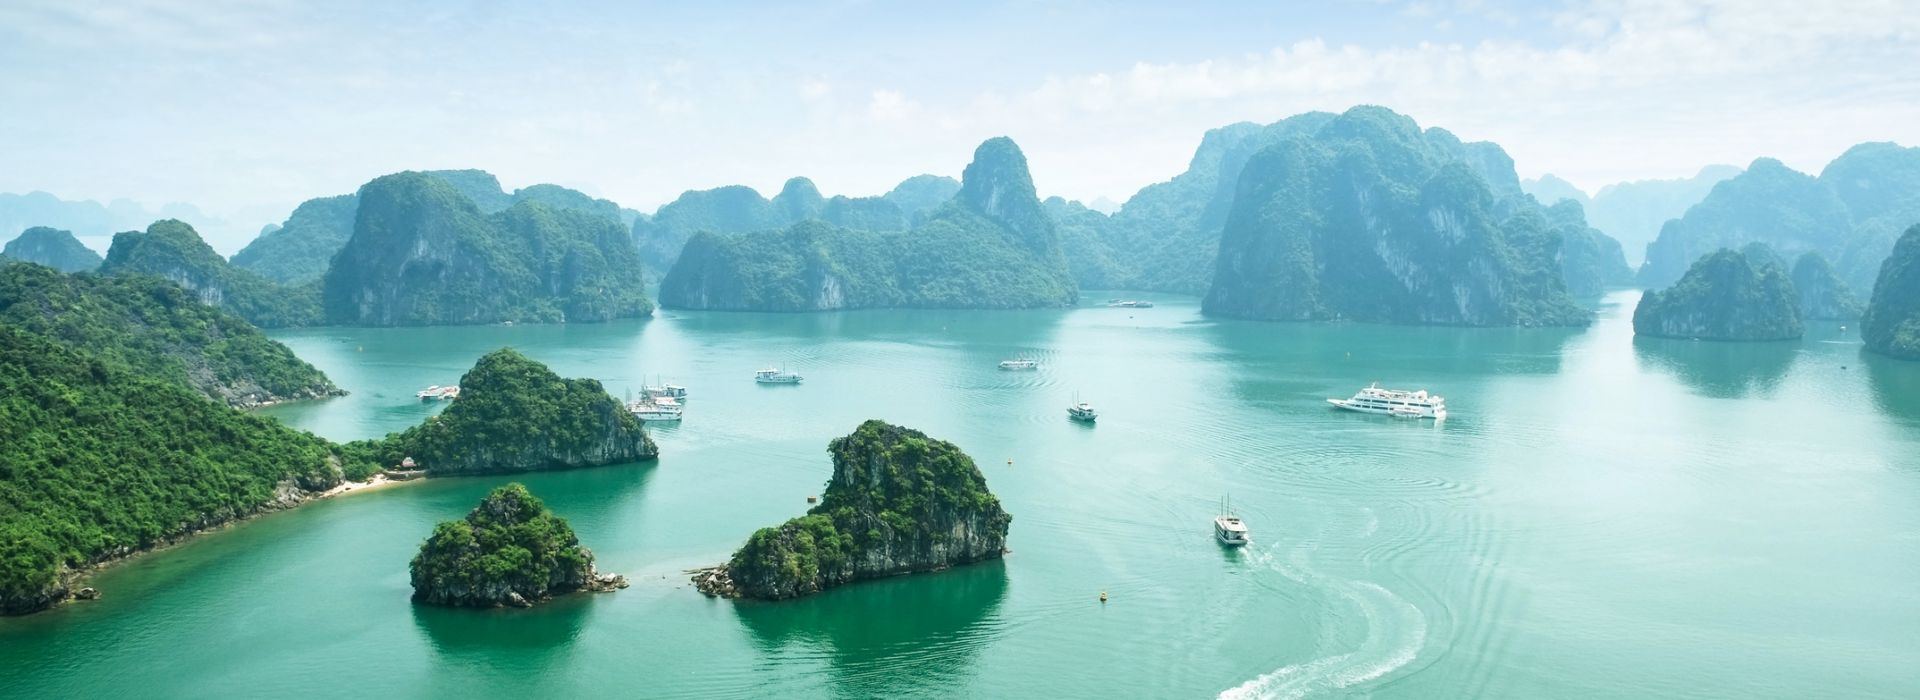 Art and architecture Tours in Vietnam